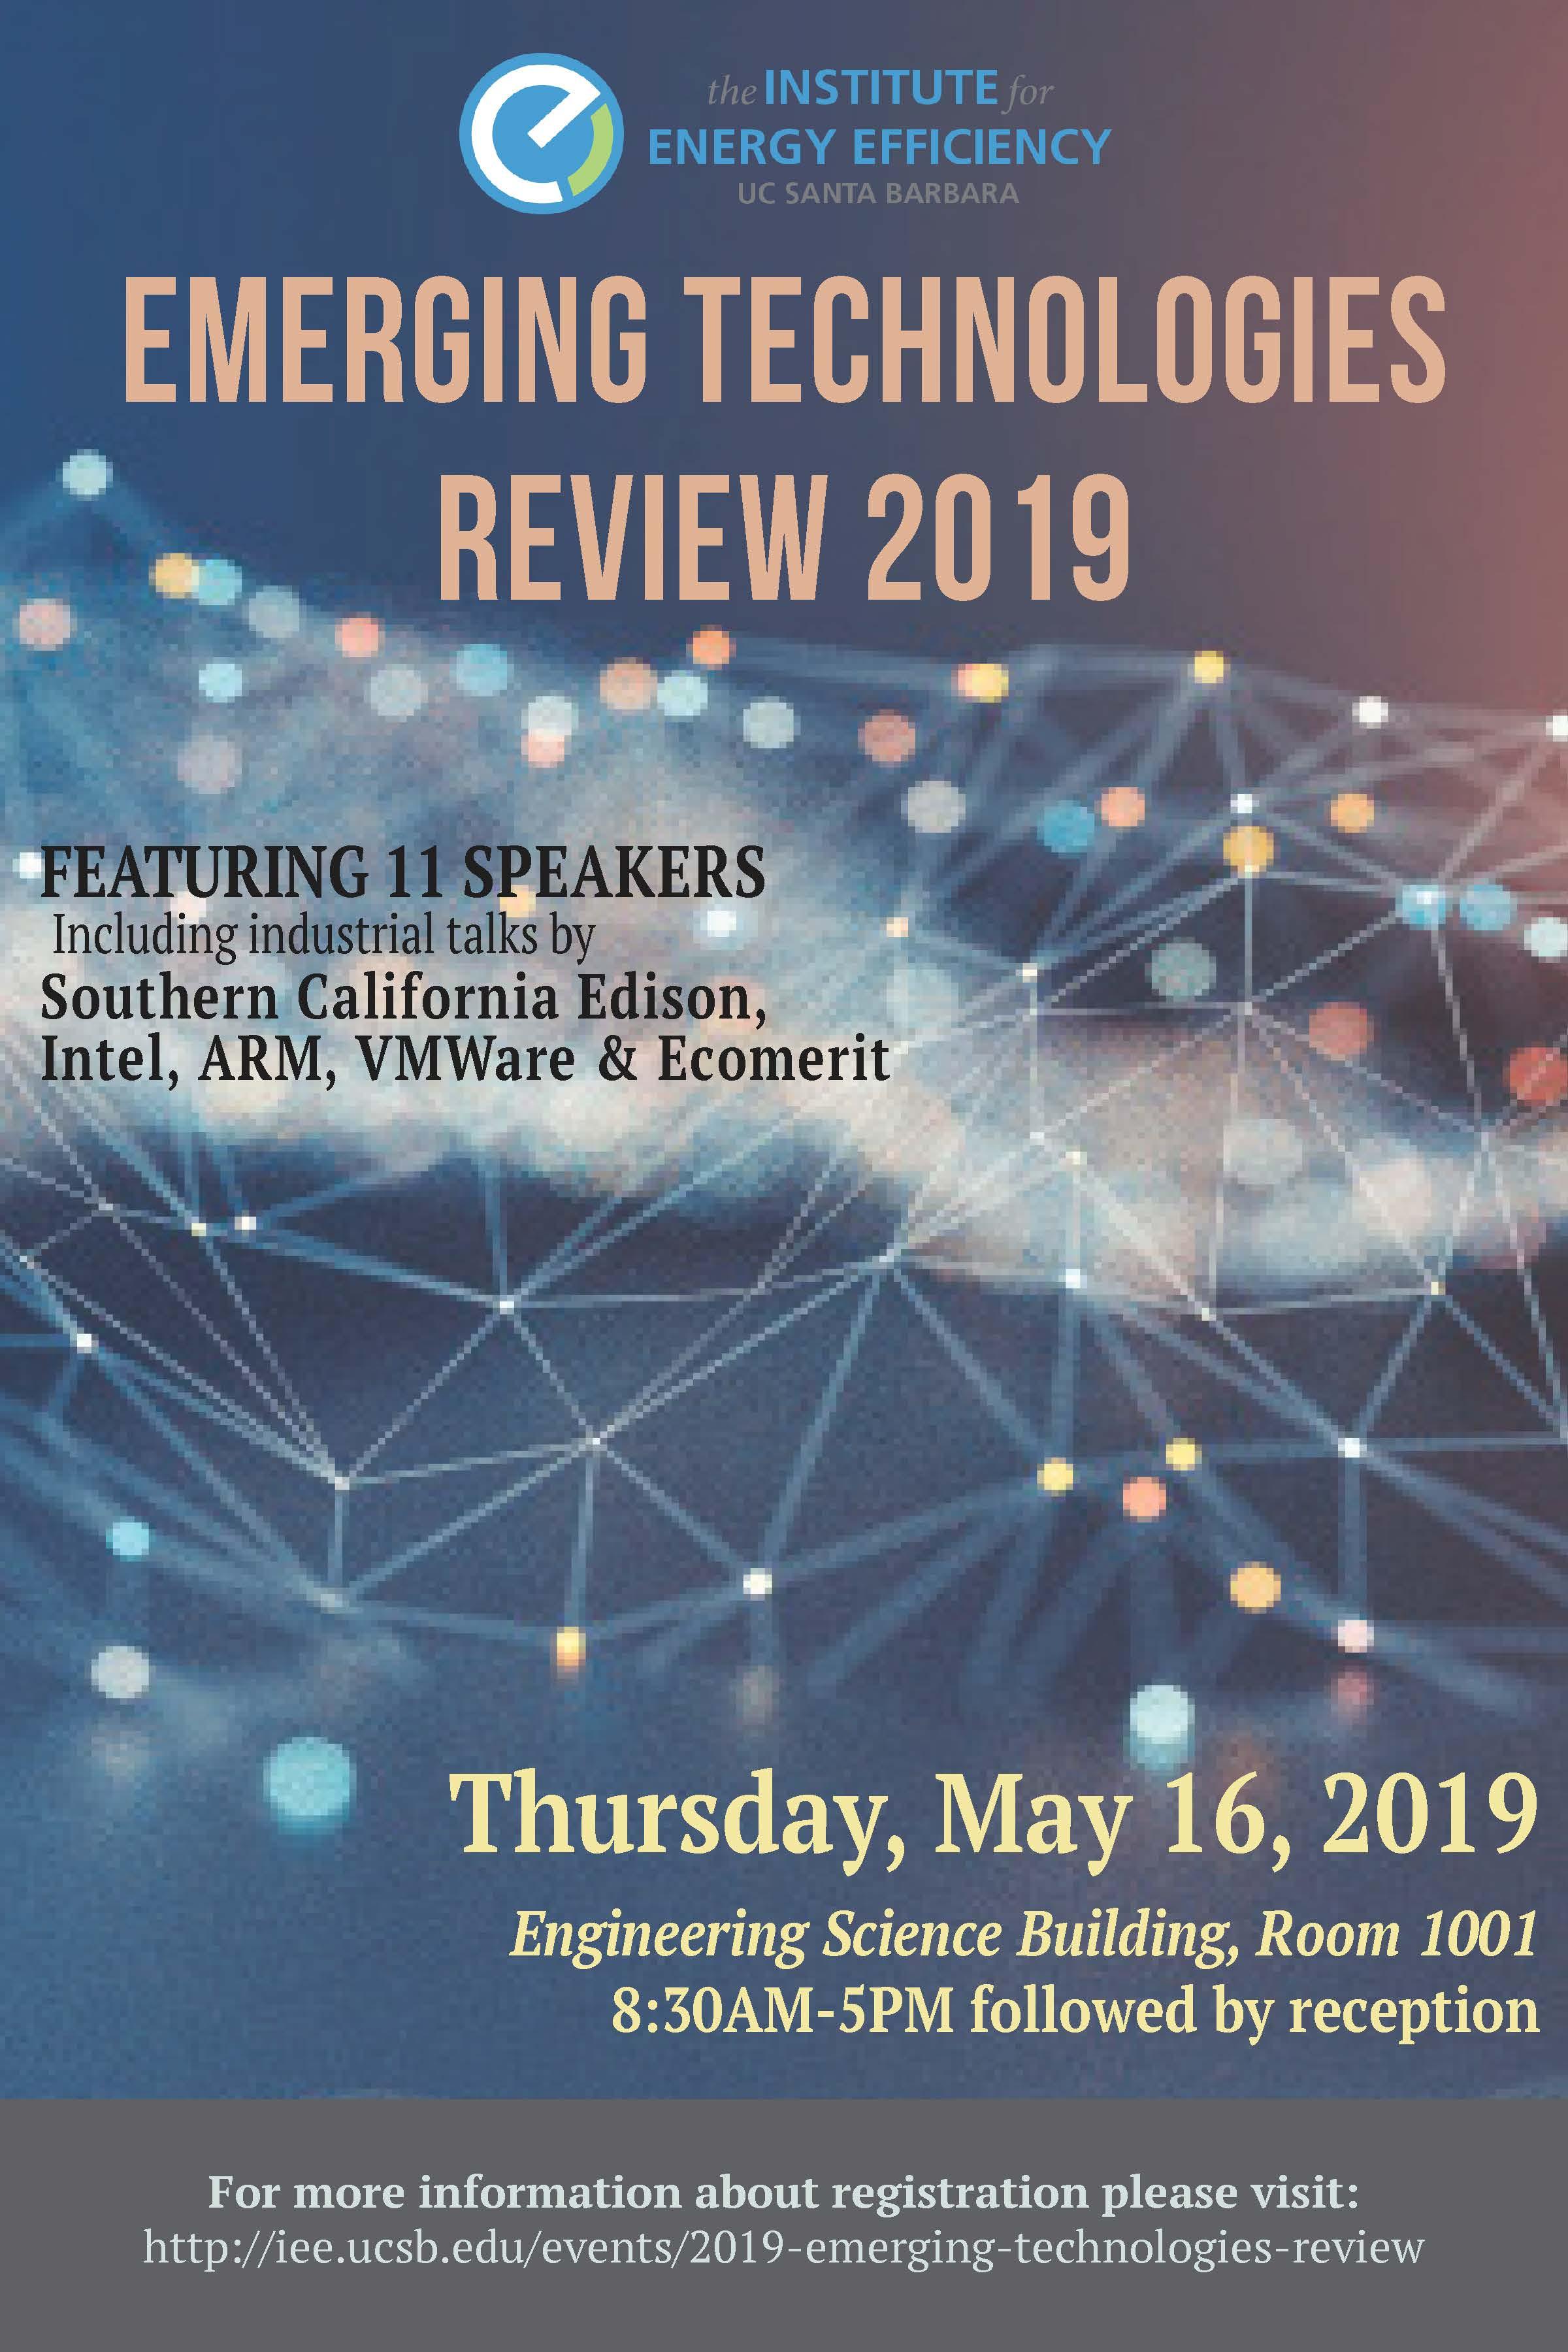 2019 emerging technologies review